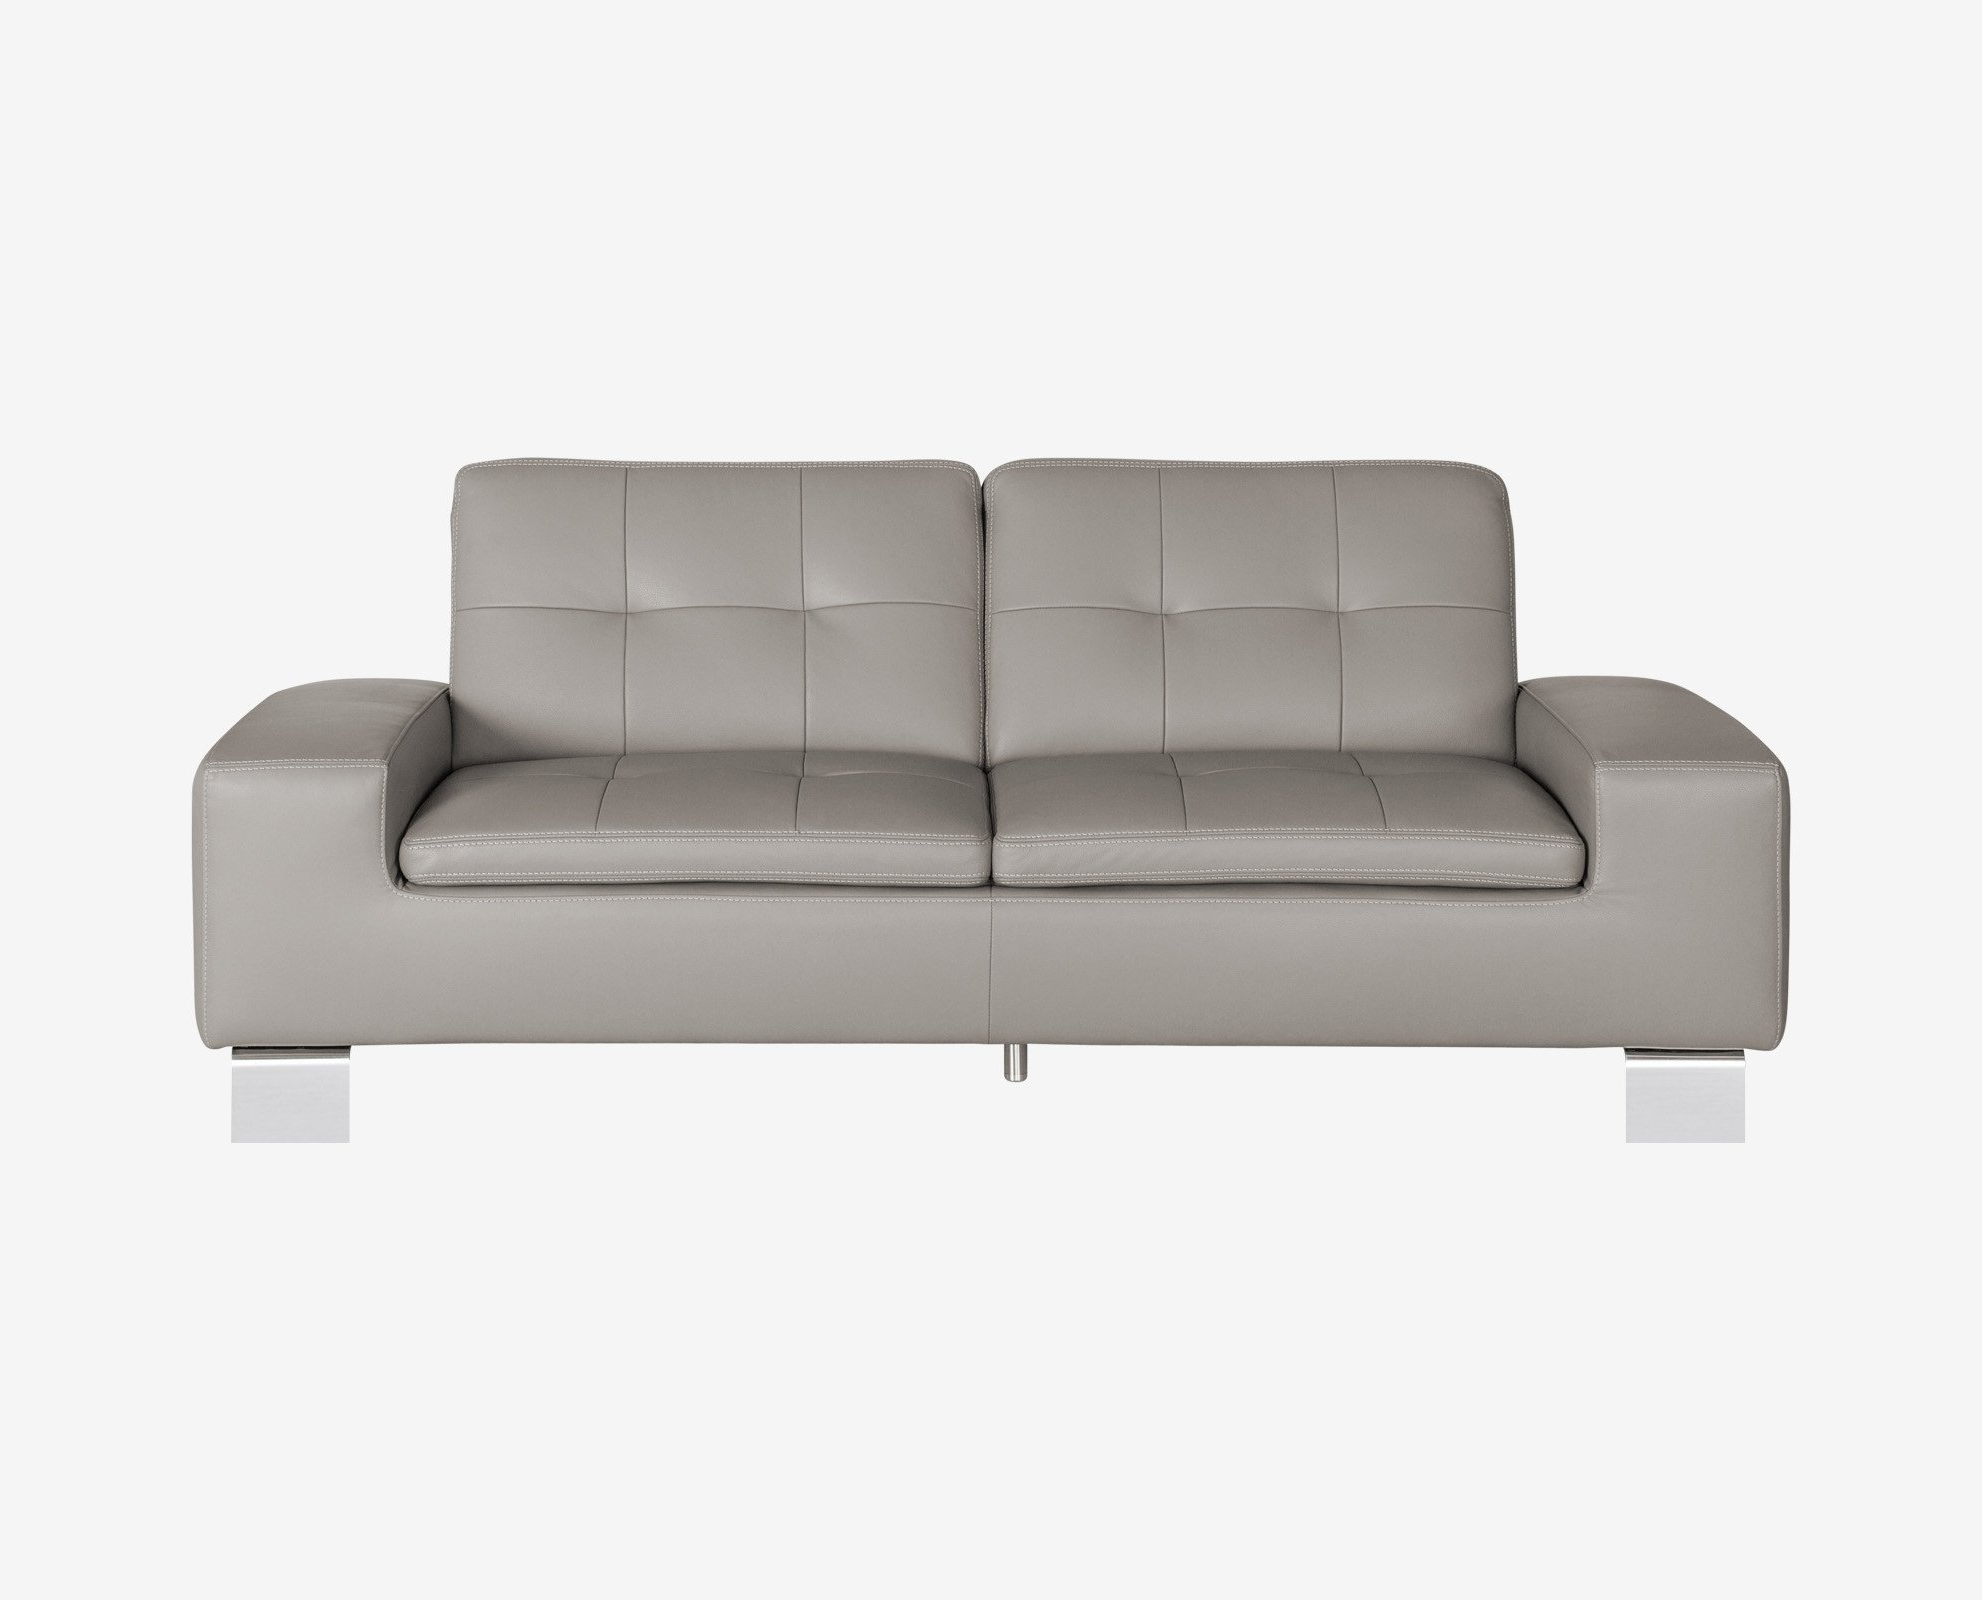 Recent Modern Grey Leather Sofa Sam Levitz Furniture For Gray Decorations Within Sam Levitz Sectional Sofas (View 20 of 20)